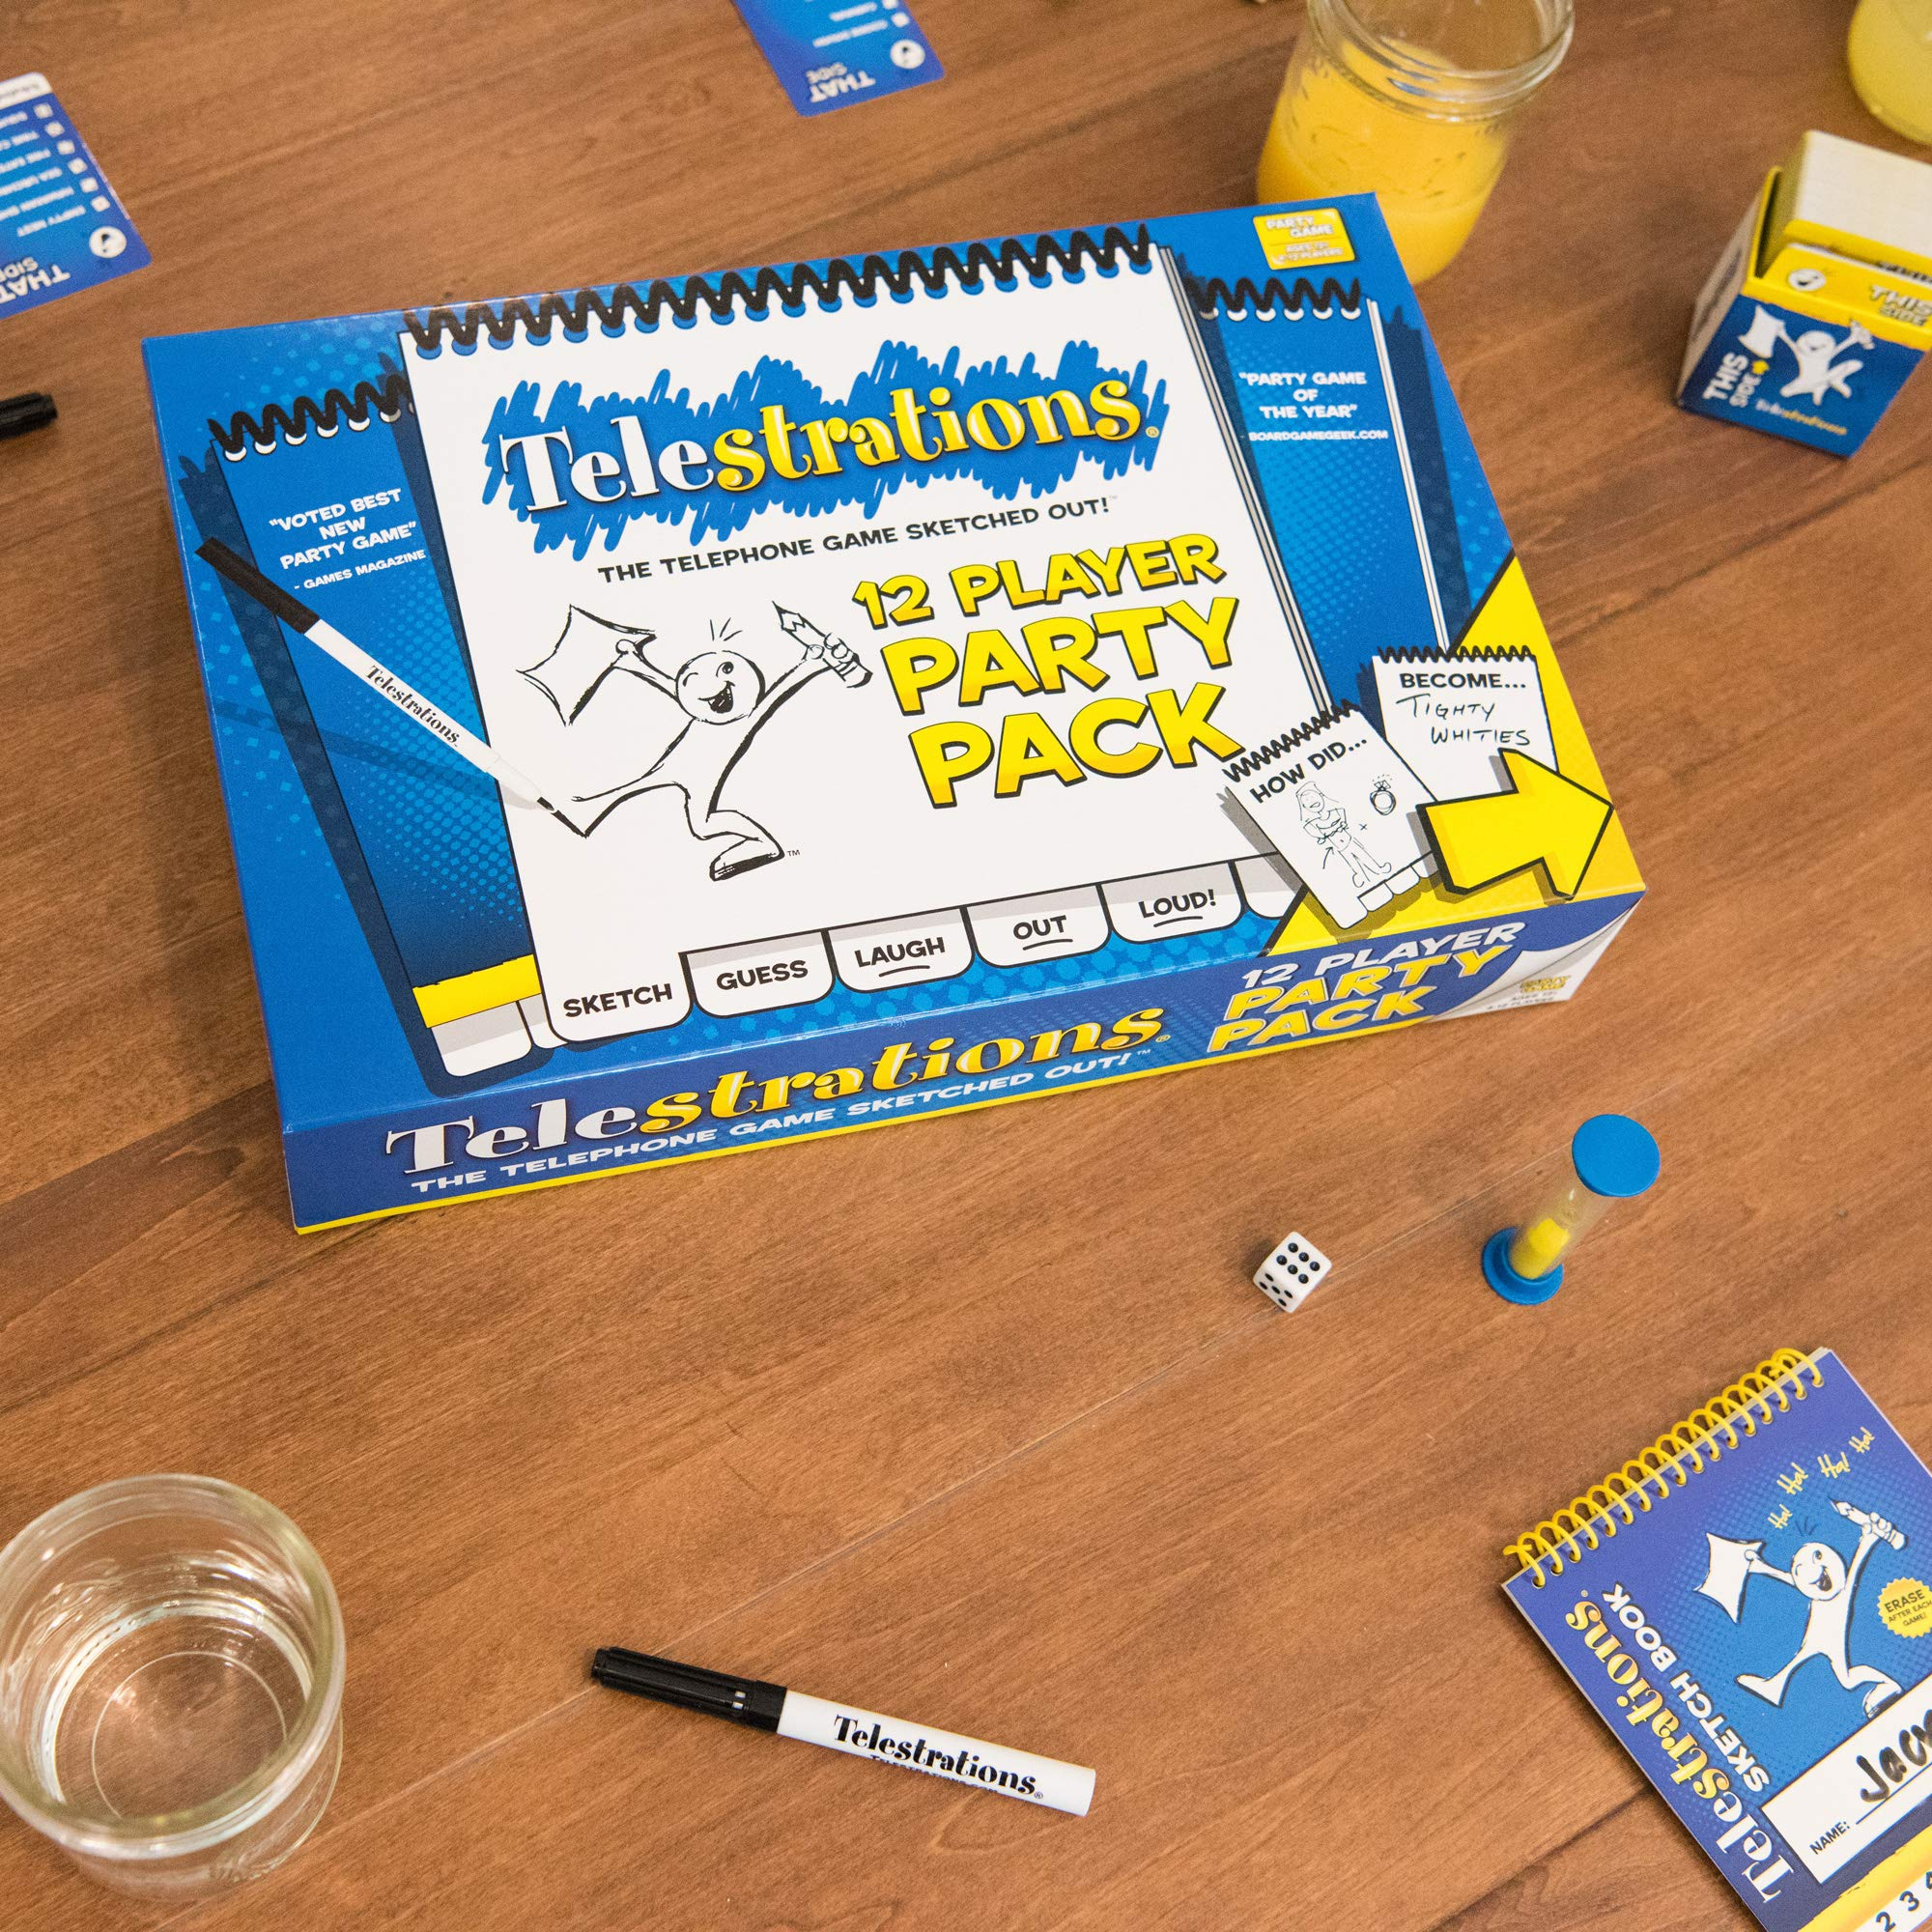 Telestrations 12 Player Party Pack: Telestrations 12 Player Party Pack: Amazon.es: Libros en idiomas extranjeros